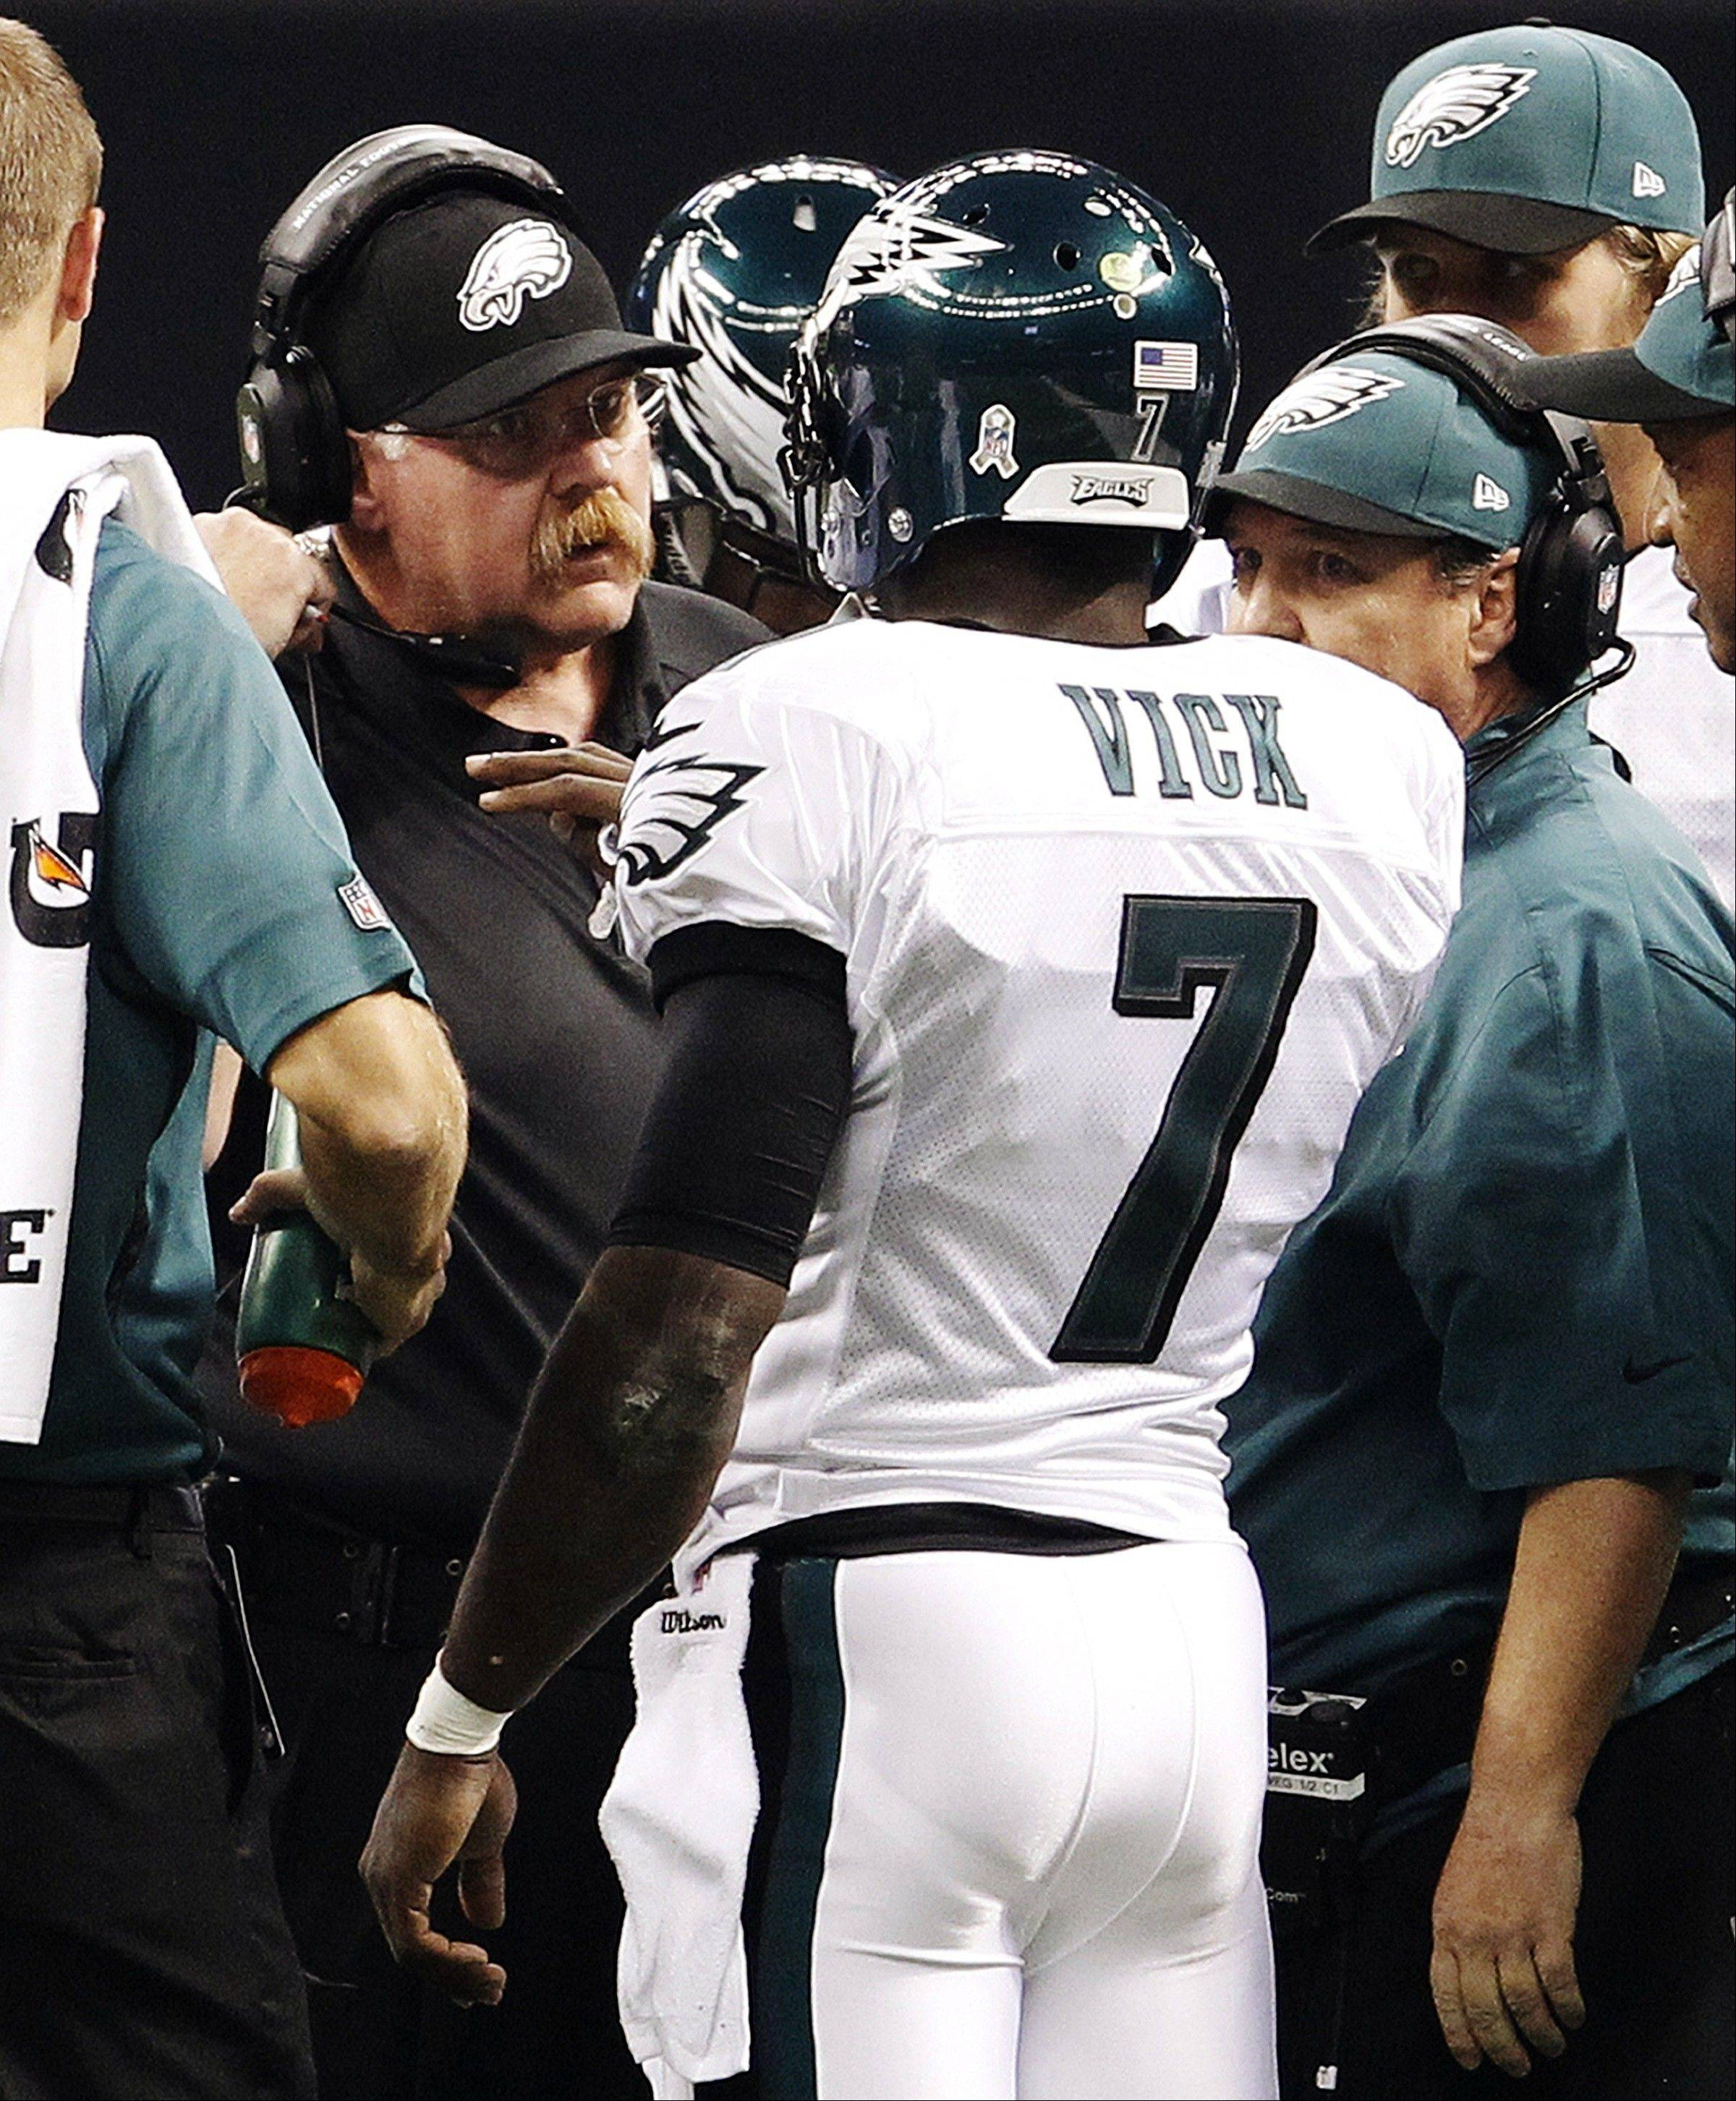 Philadelphia Eagles head coach Andy Reid is on the hot seat with his team struggling this season to win games behind starting quarterback Michael Vick.